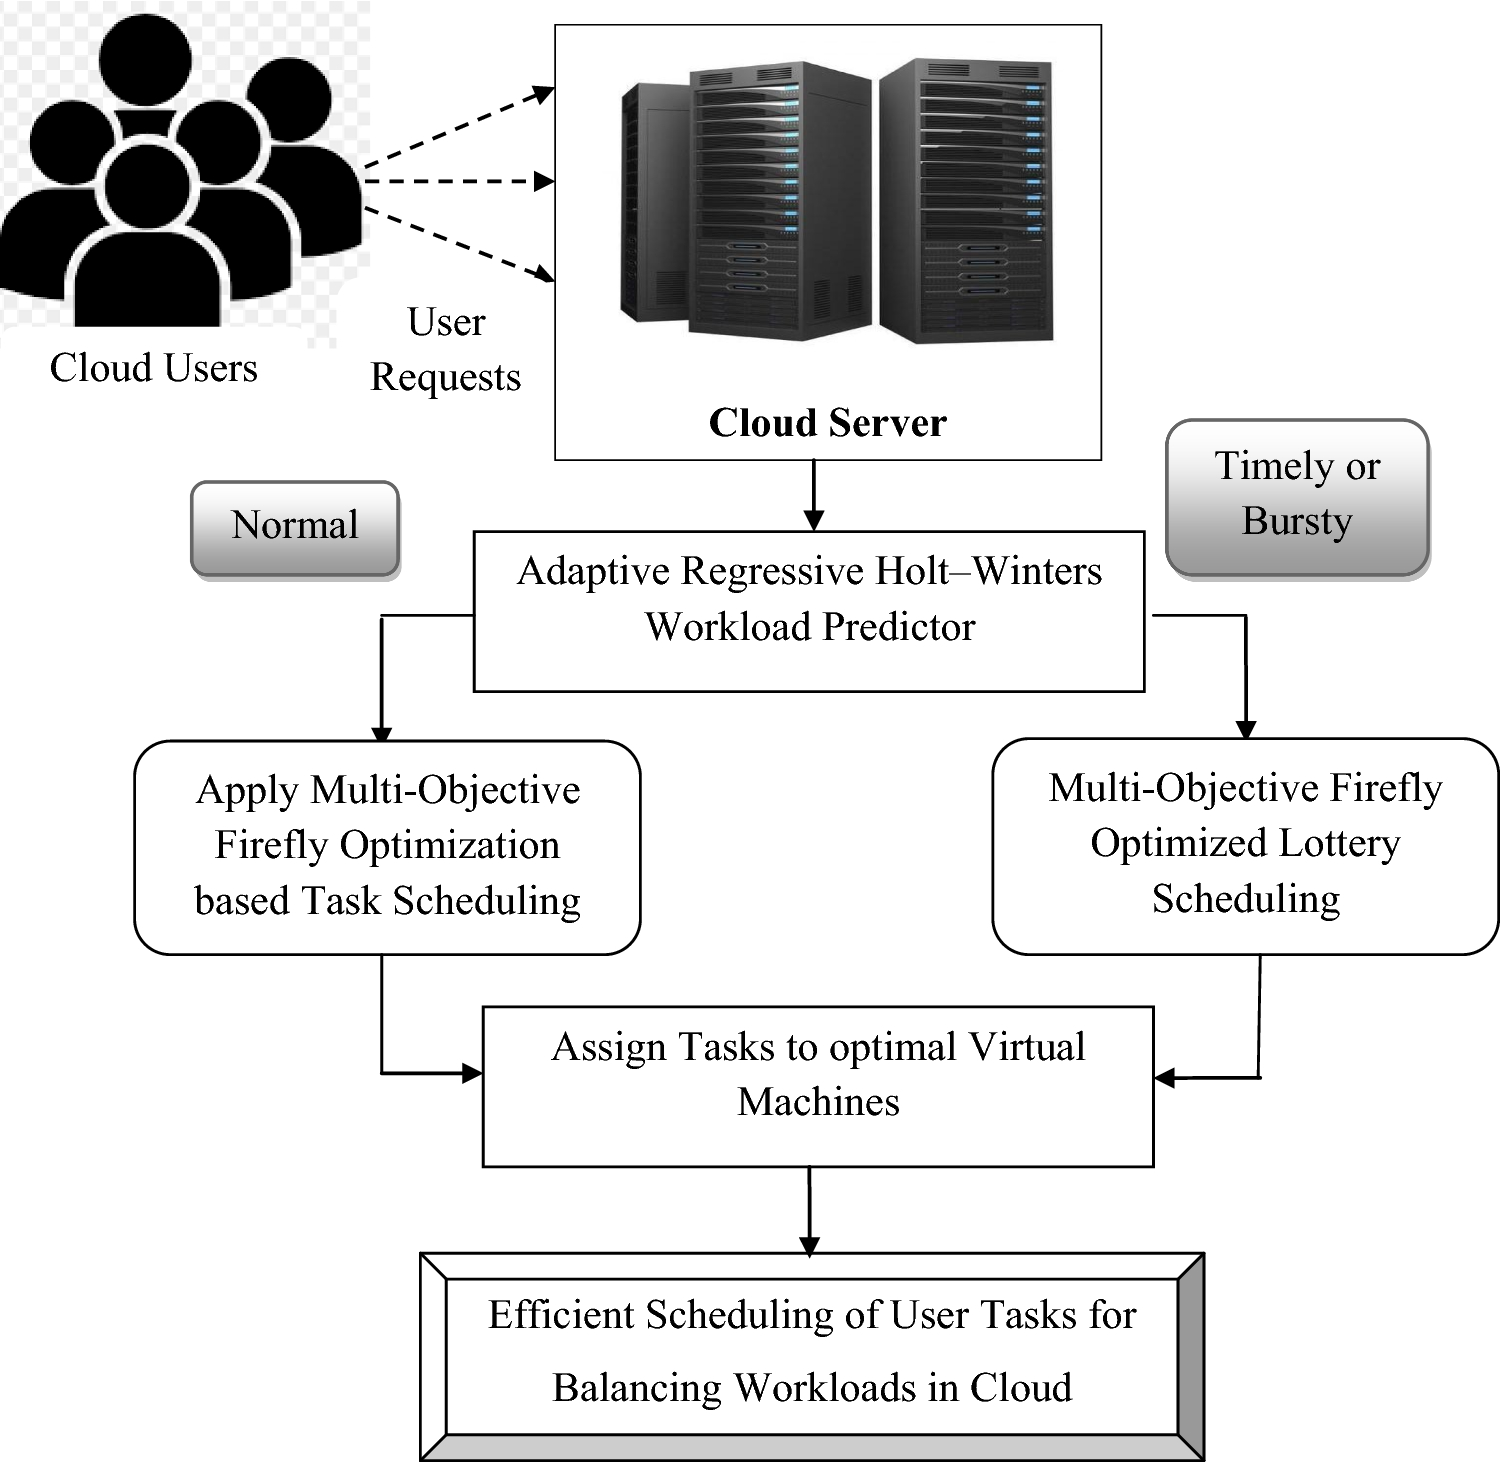 Adaptive regressive holt–winters workload prediction and firefly